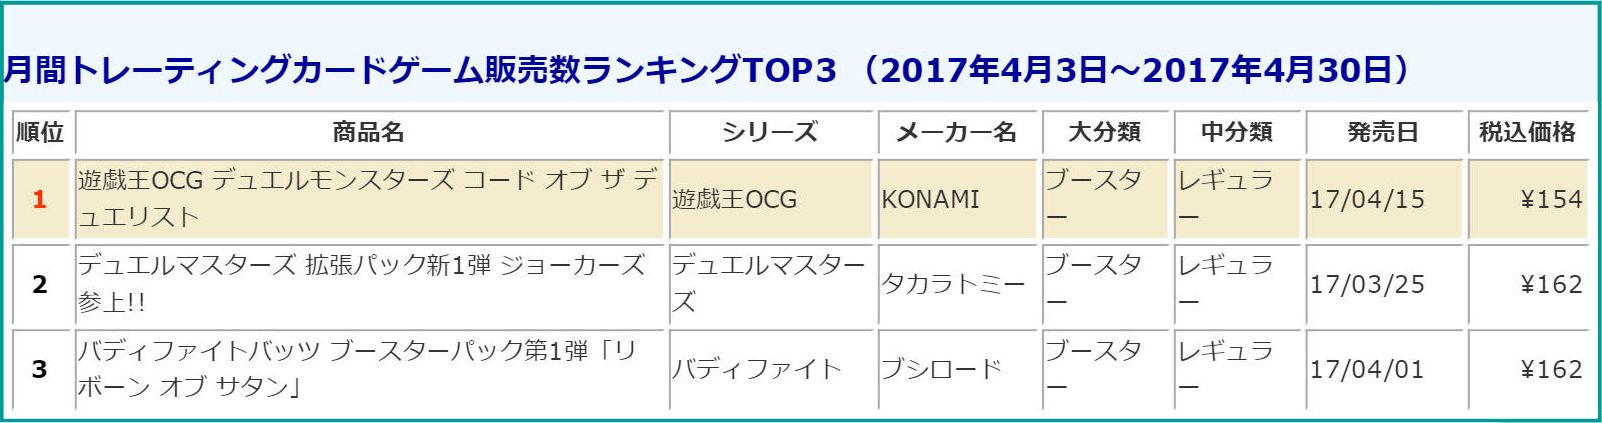 tcg-sales-ranking-201704-monthly-media-create-170512.jpg